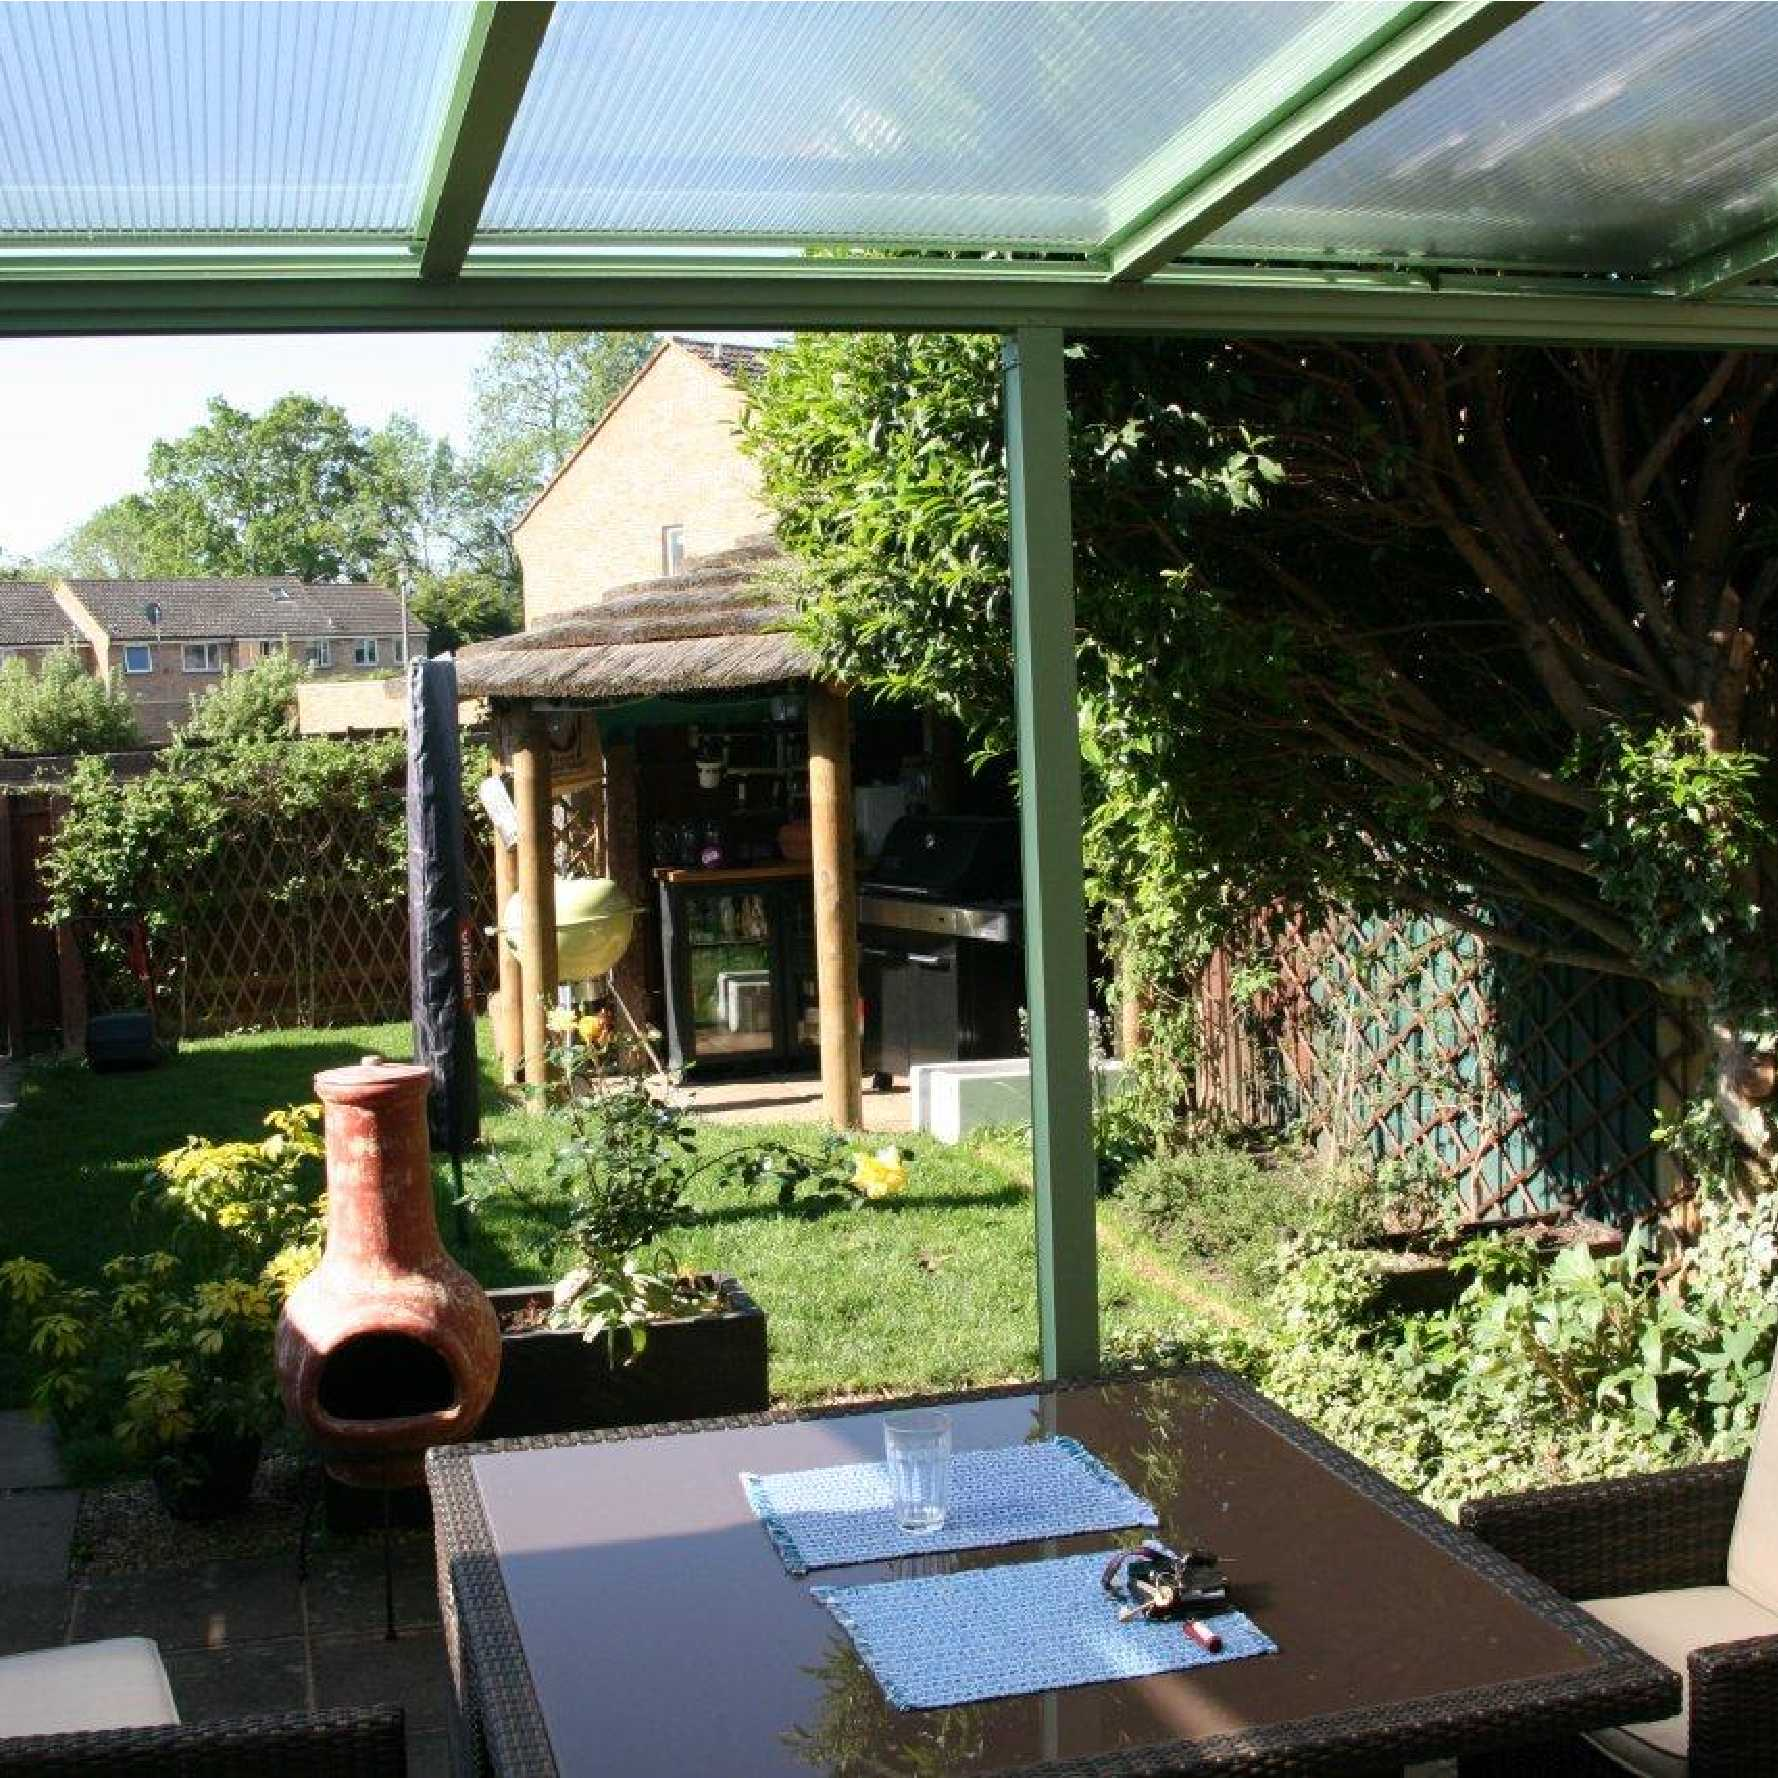 Affordable Omega Smart Lean-To Canopy with 16mm Polycarbonate Glazing - 6.3m (W) x 2.5m (P), (4) Supporting Posts